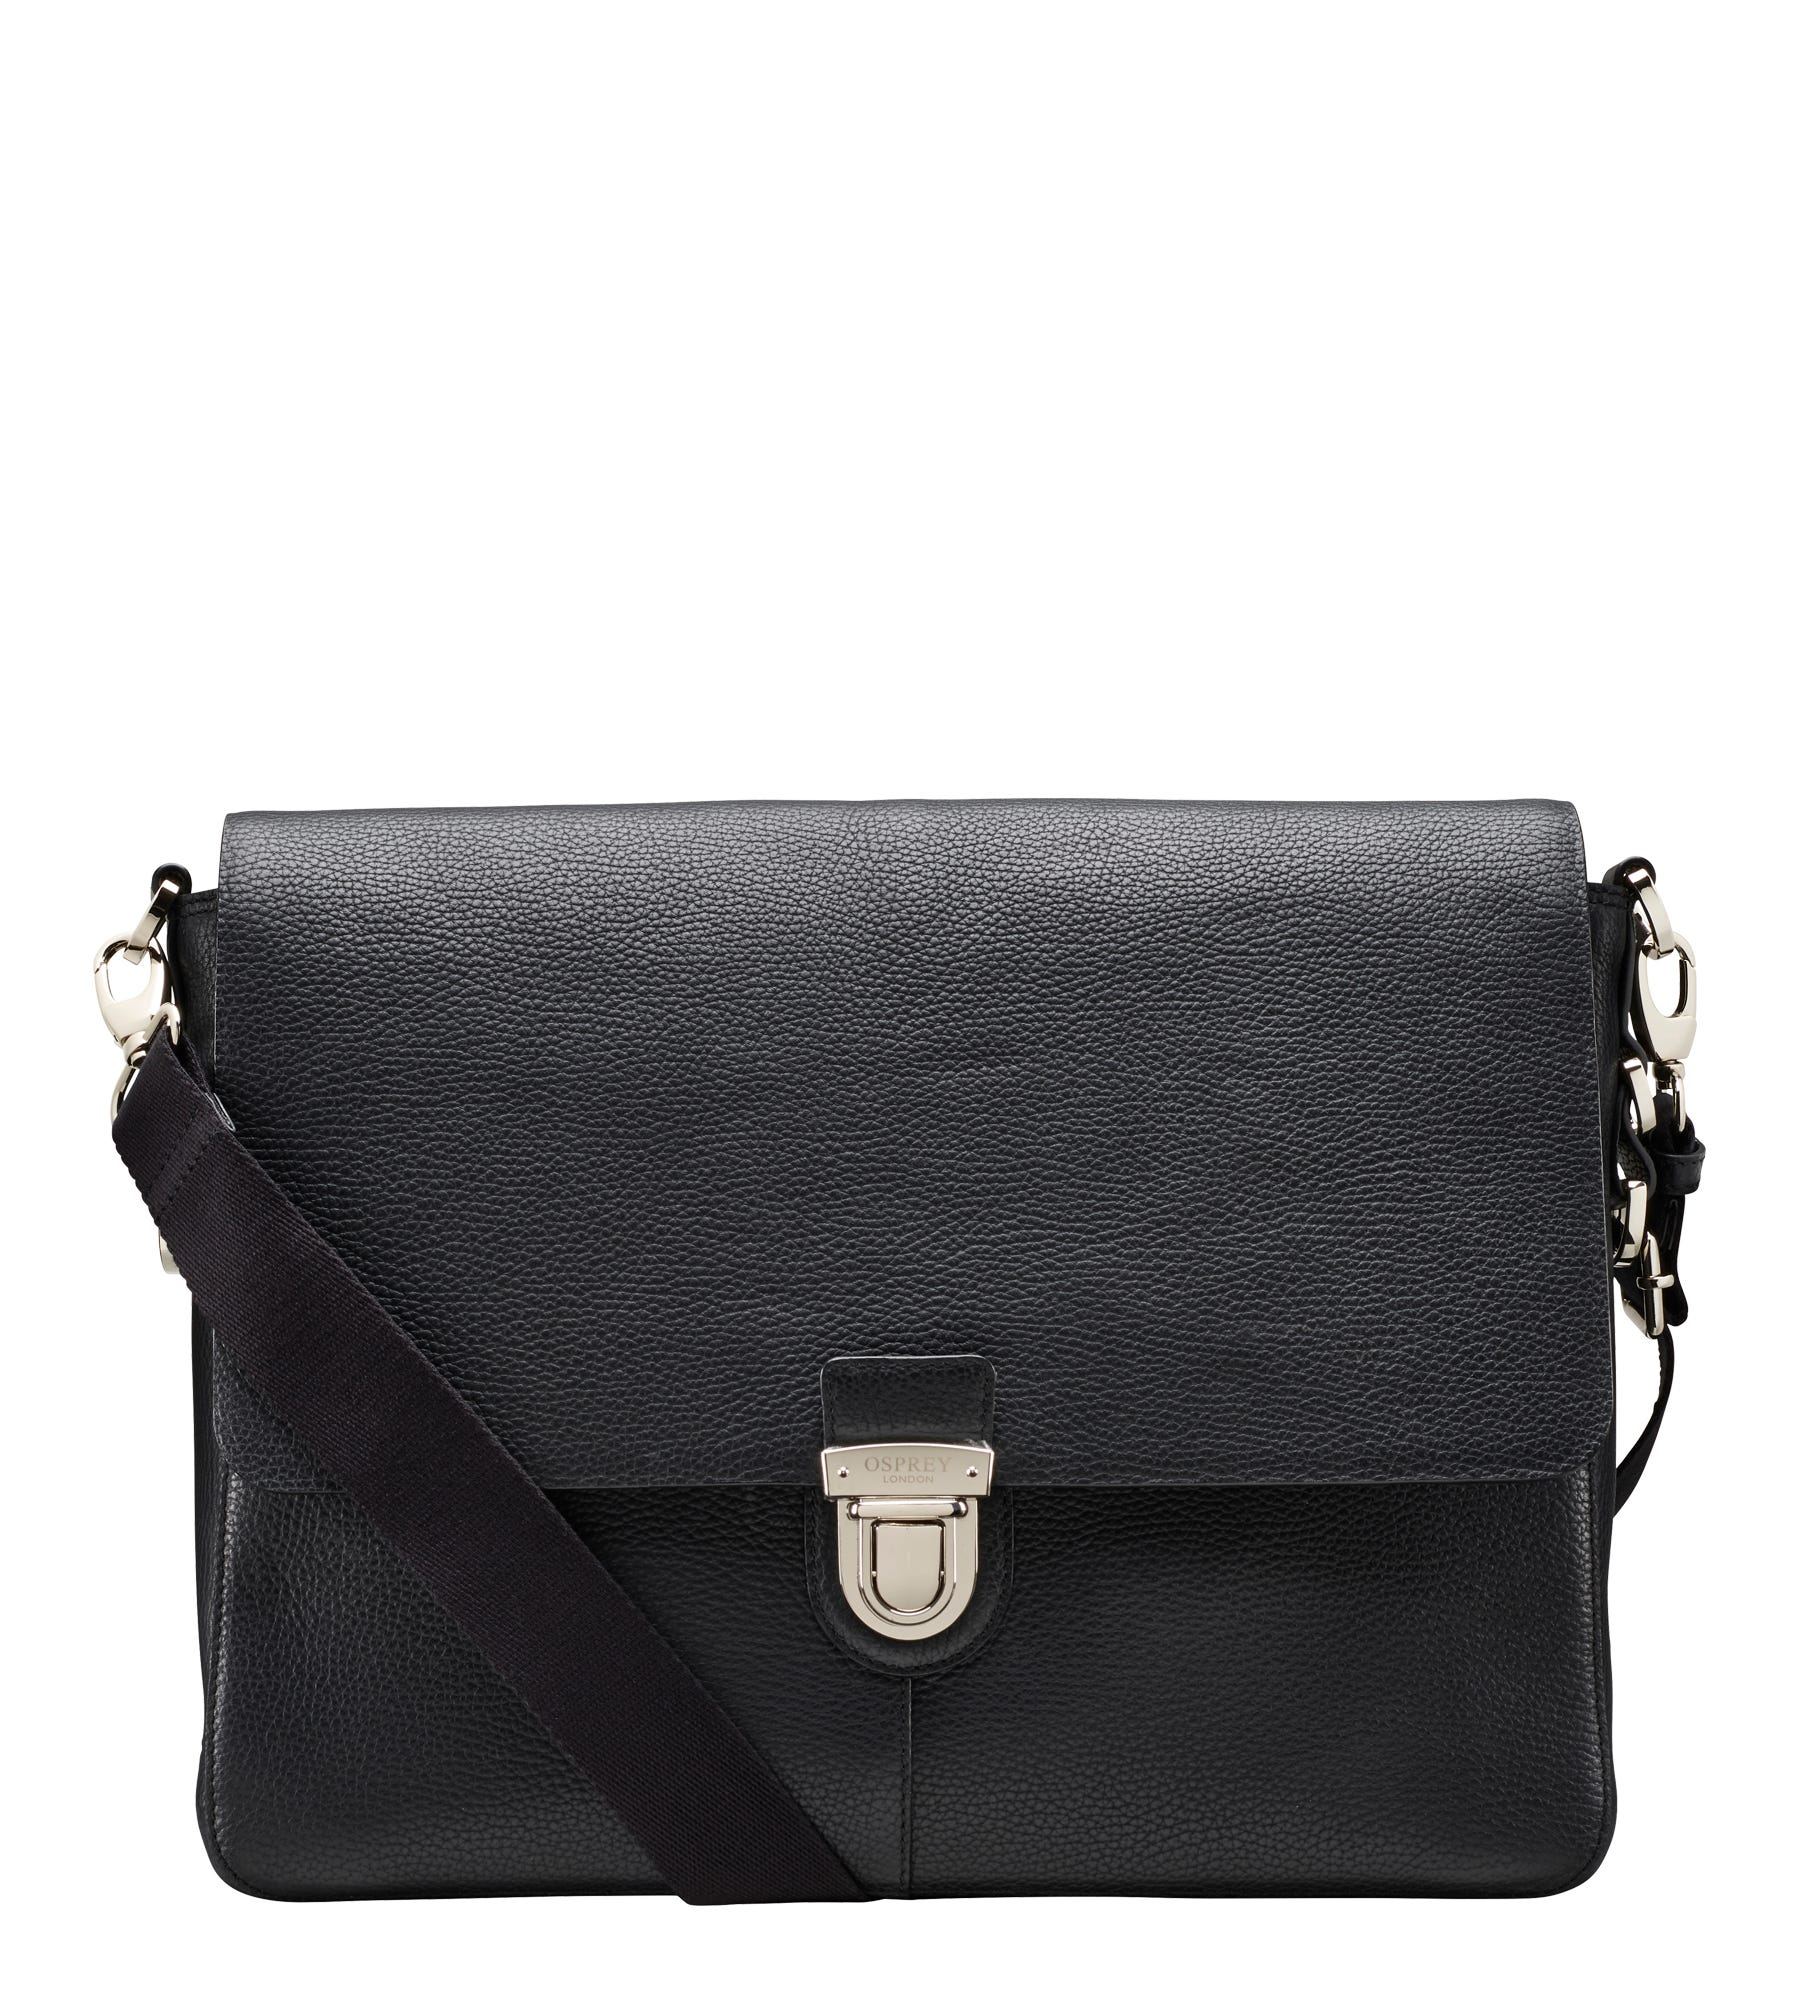 An image of The Broadgate Leather Laptop Bag